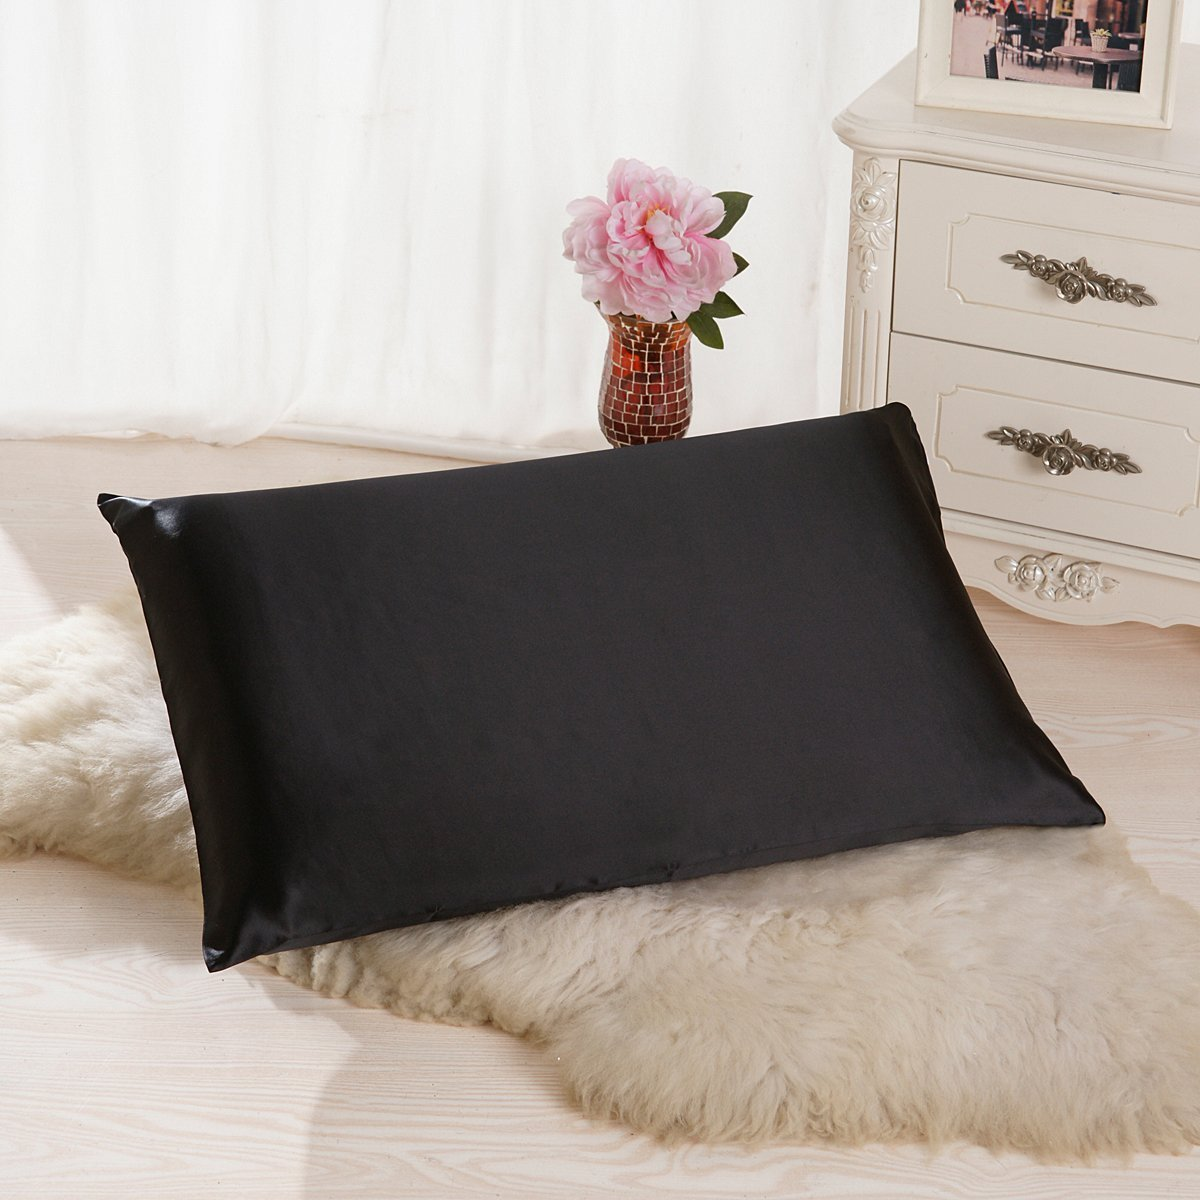 ALASKA BEAR 100% 19 Momme Mulberry Silk Pillowcase, 40x40 cm, Both Sides with Top Quality Silk, 600 Thread Count, Hypoallergenic Pillow Shams Cover for Skin Health with Hidden Zipper (1pc, White)